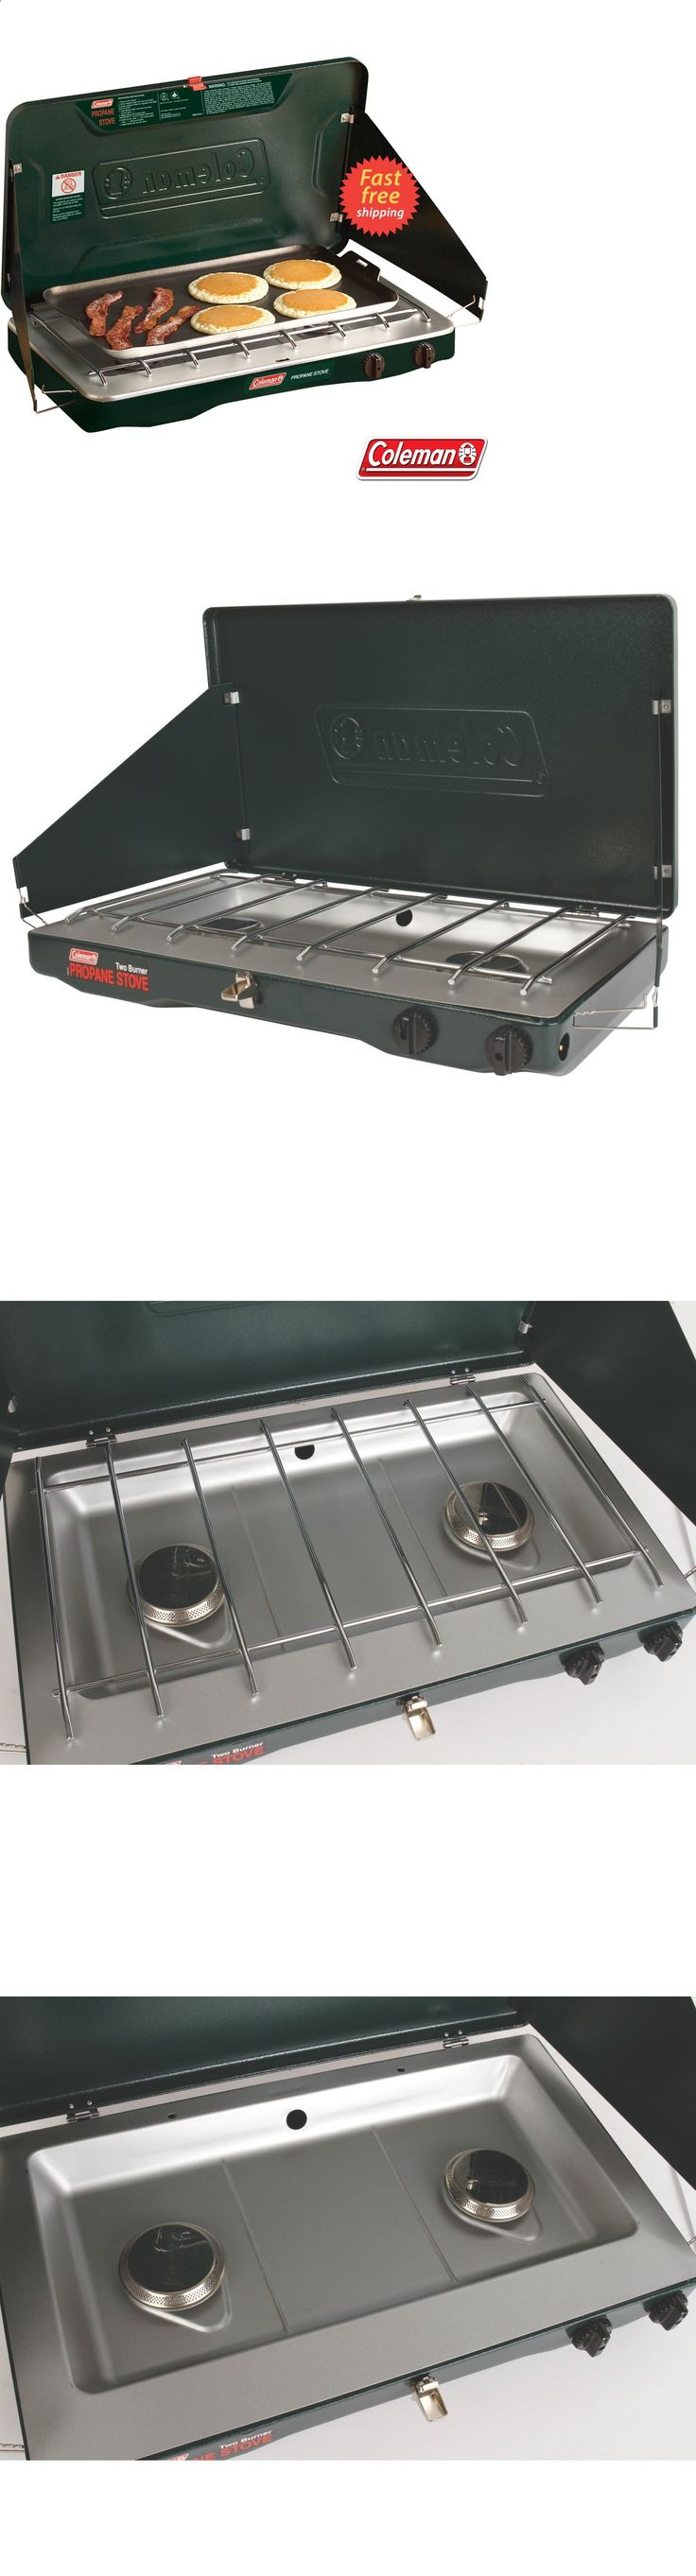 25+ best ideas about Coleman camping stove on Pinterest | Camping ...